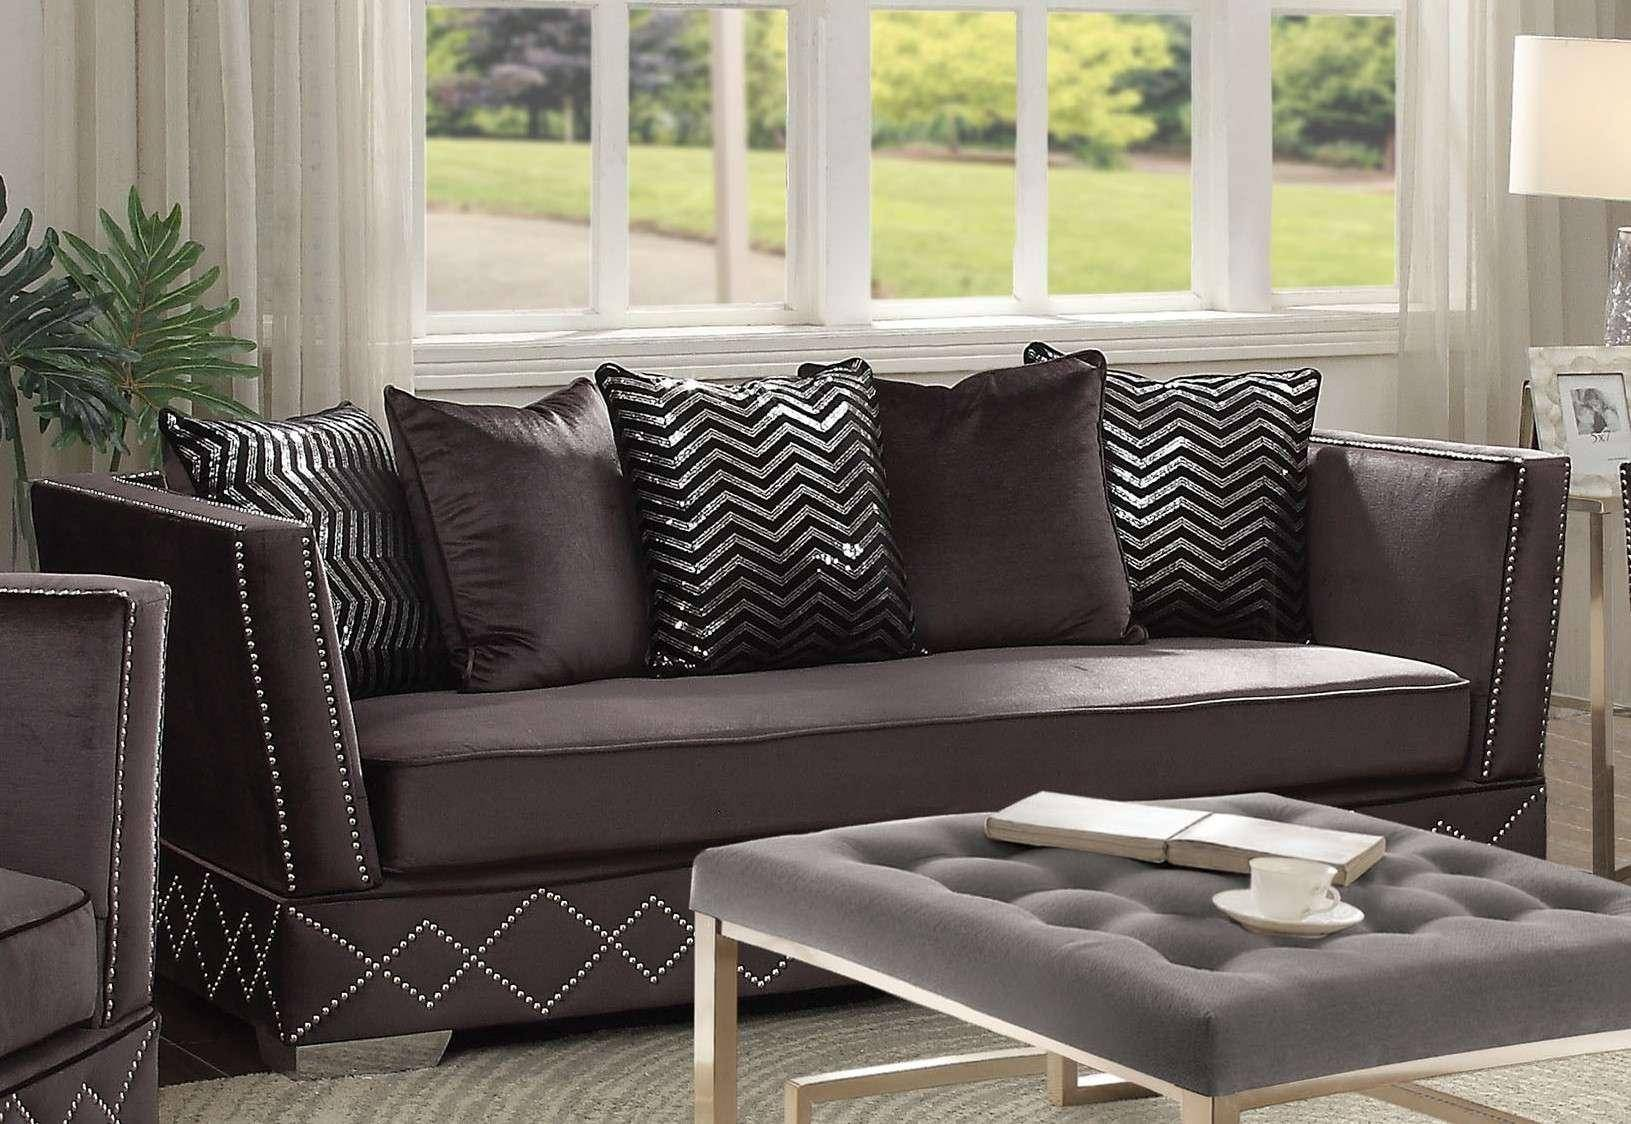 Cool Charcoal Velvet Upholstery Sofa Modern Acme Furniture 54260 Bralicious Painted Fabric Chair Ideas Braliciousco